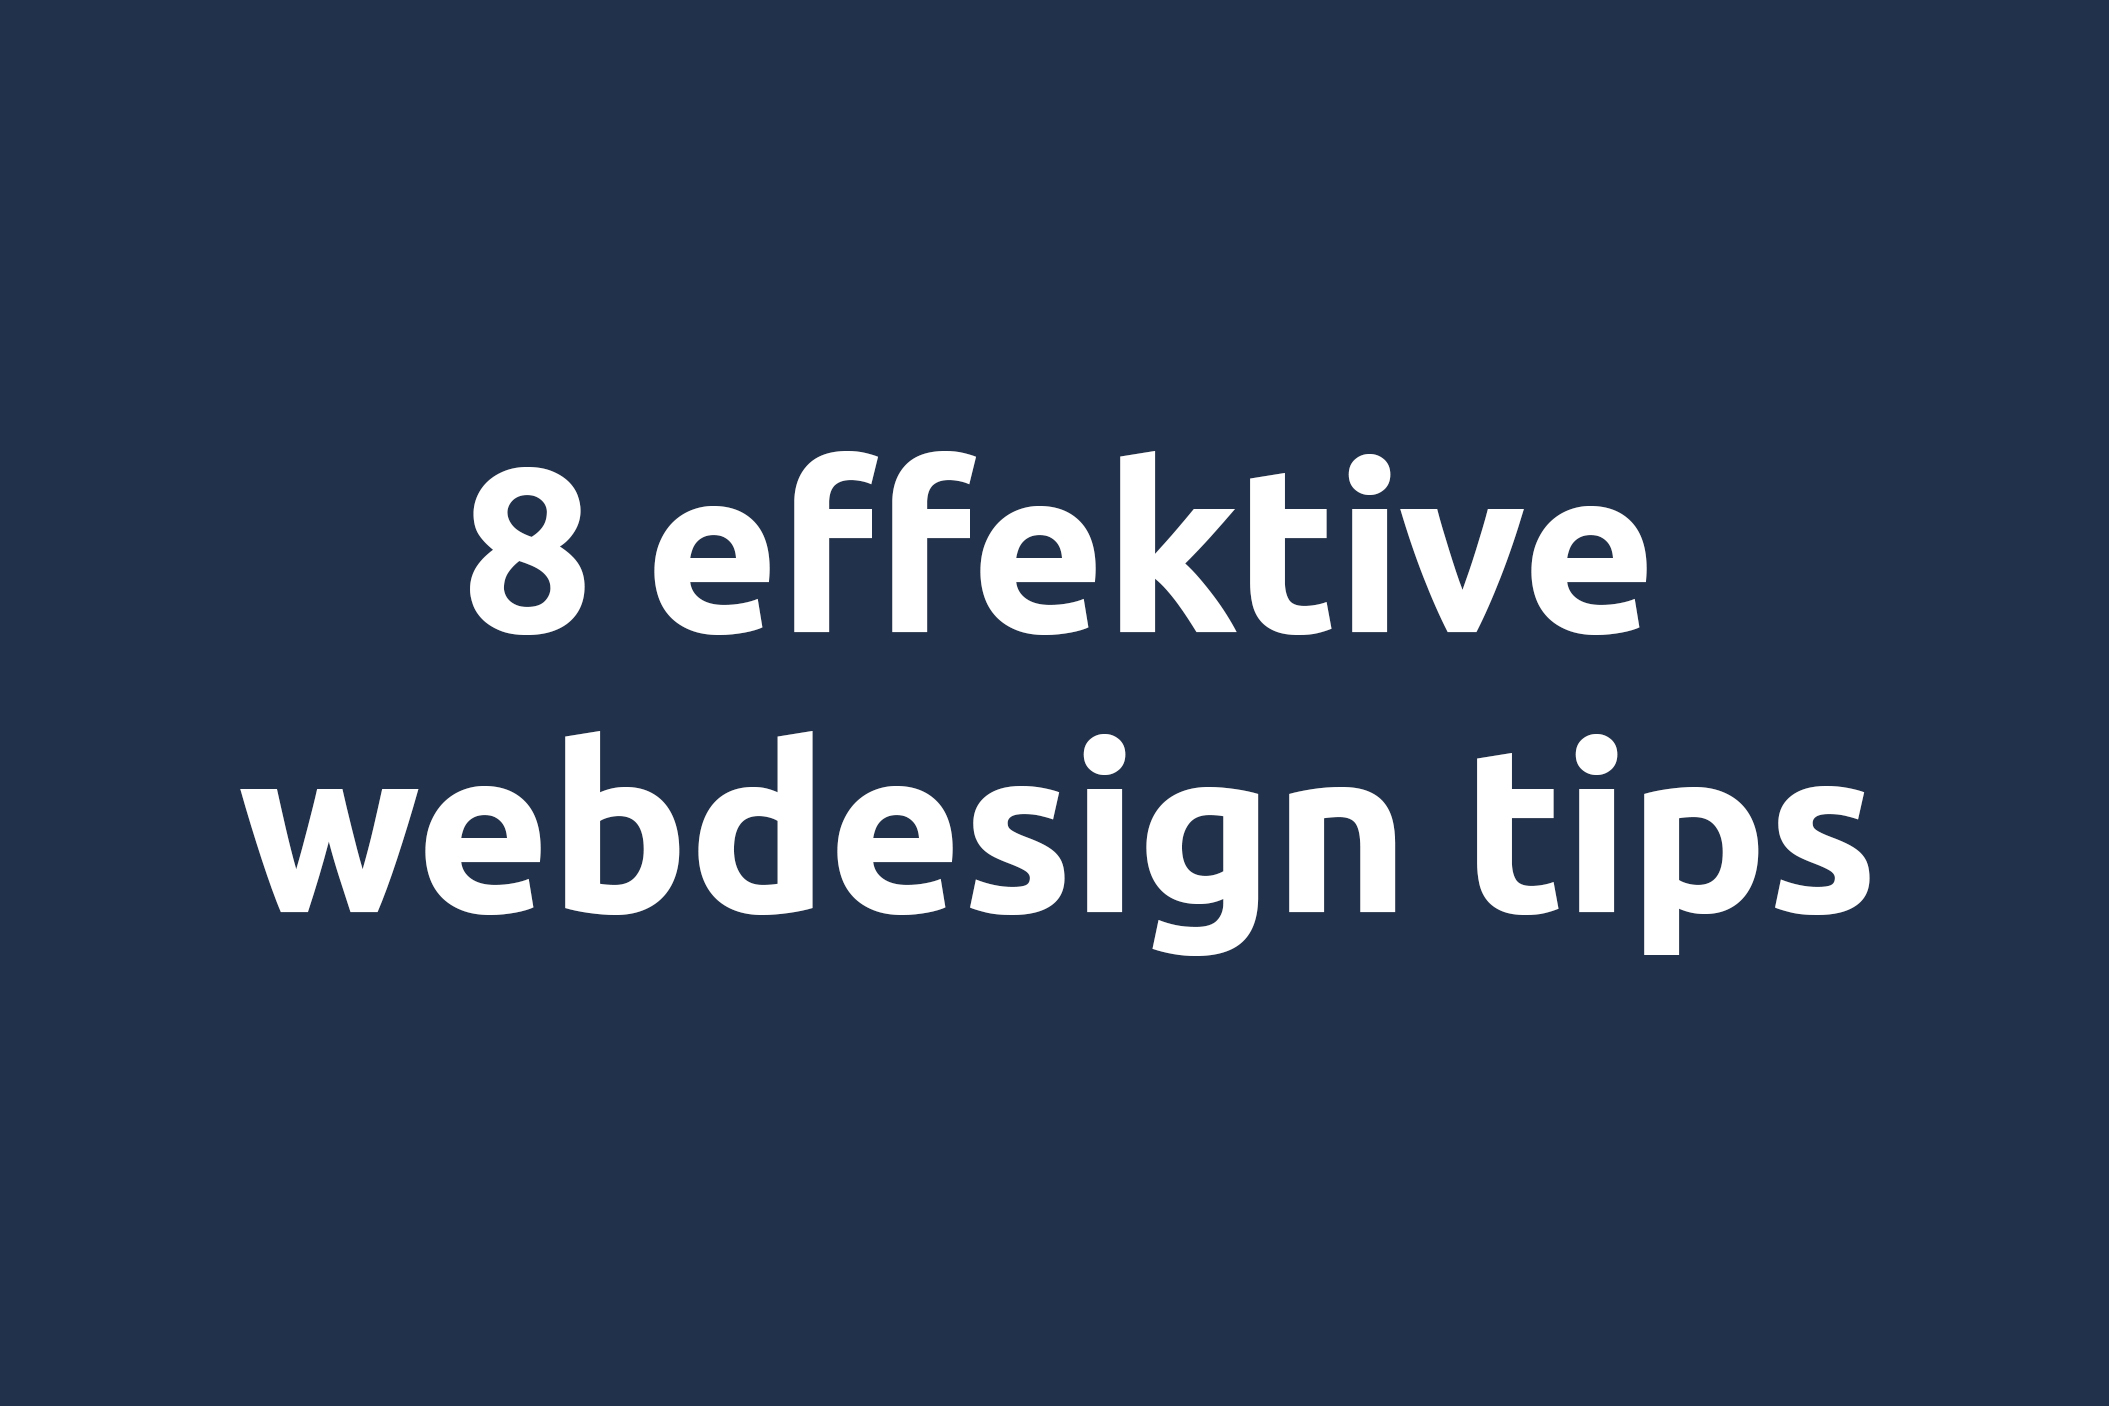 8 effektive webdesign tips av Smart Digitalt